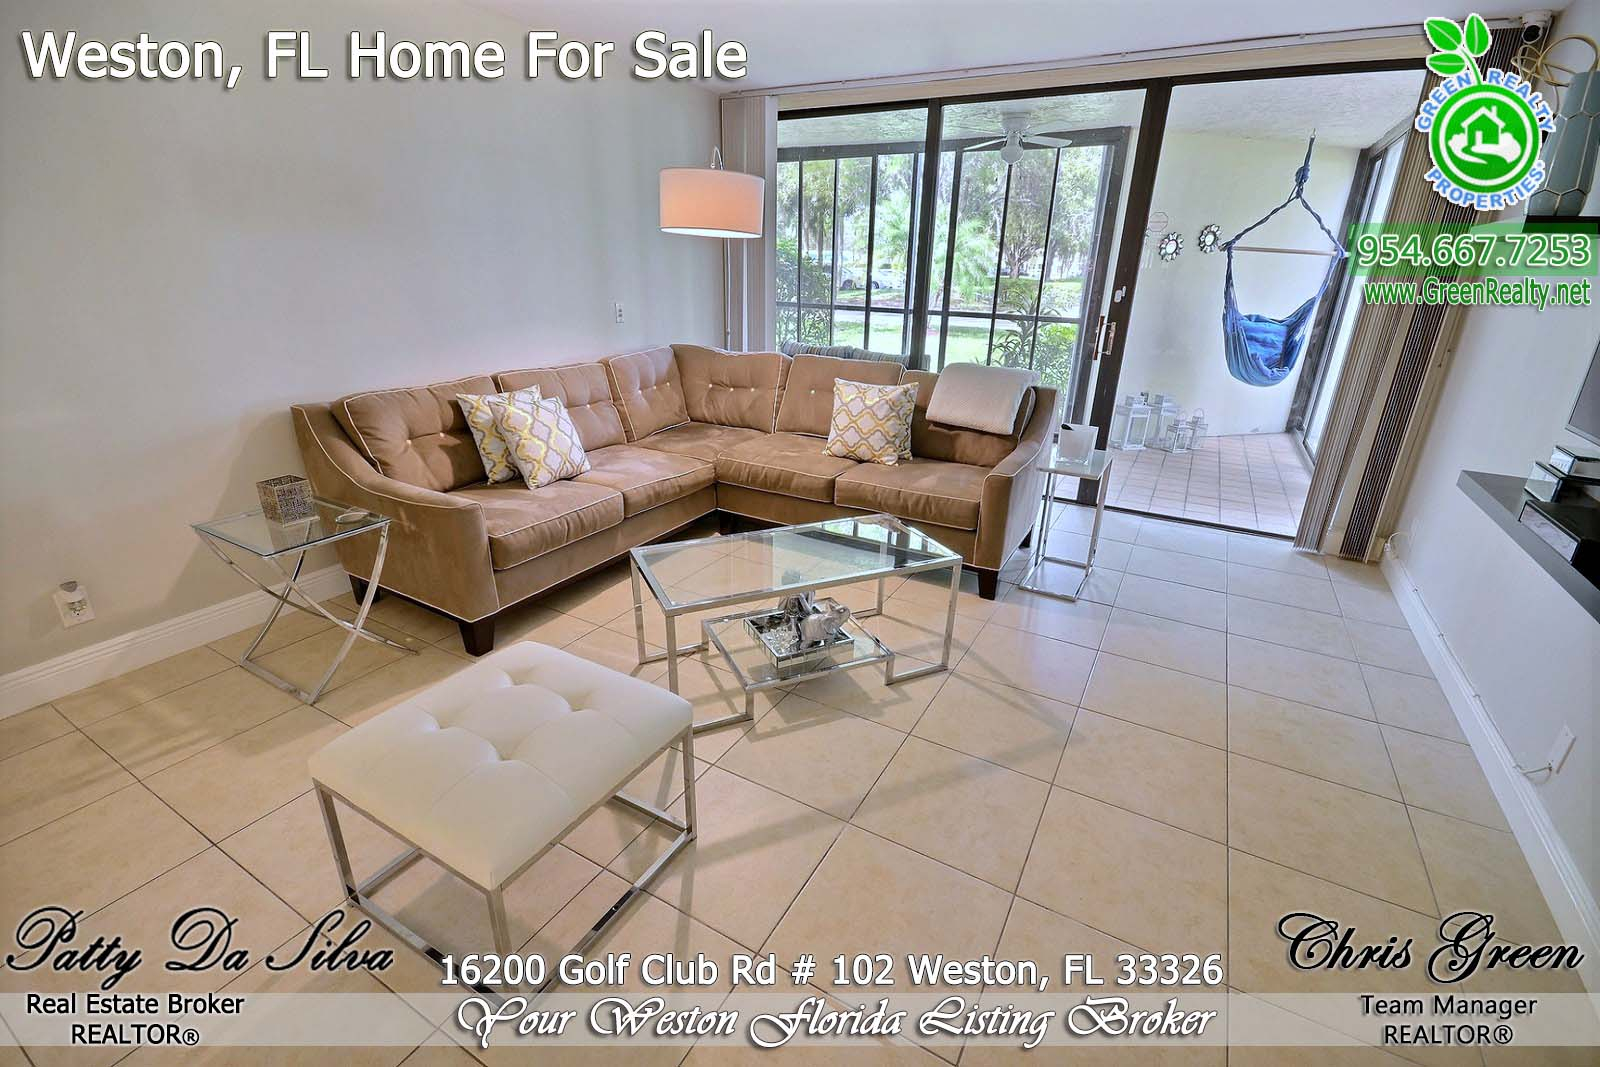 8 16200 Golf Club Rd, Unit 102, Weston FL 33326 (5)